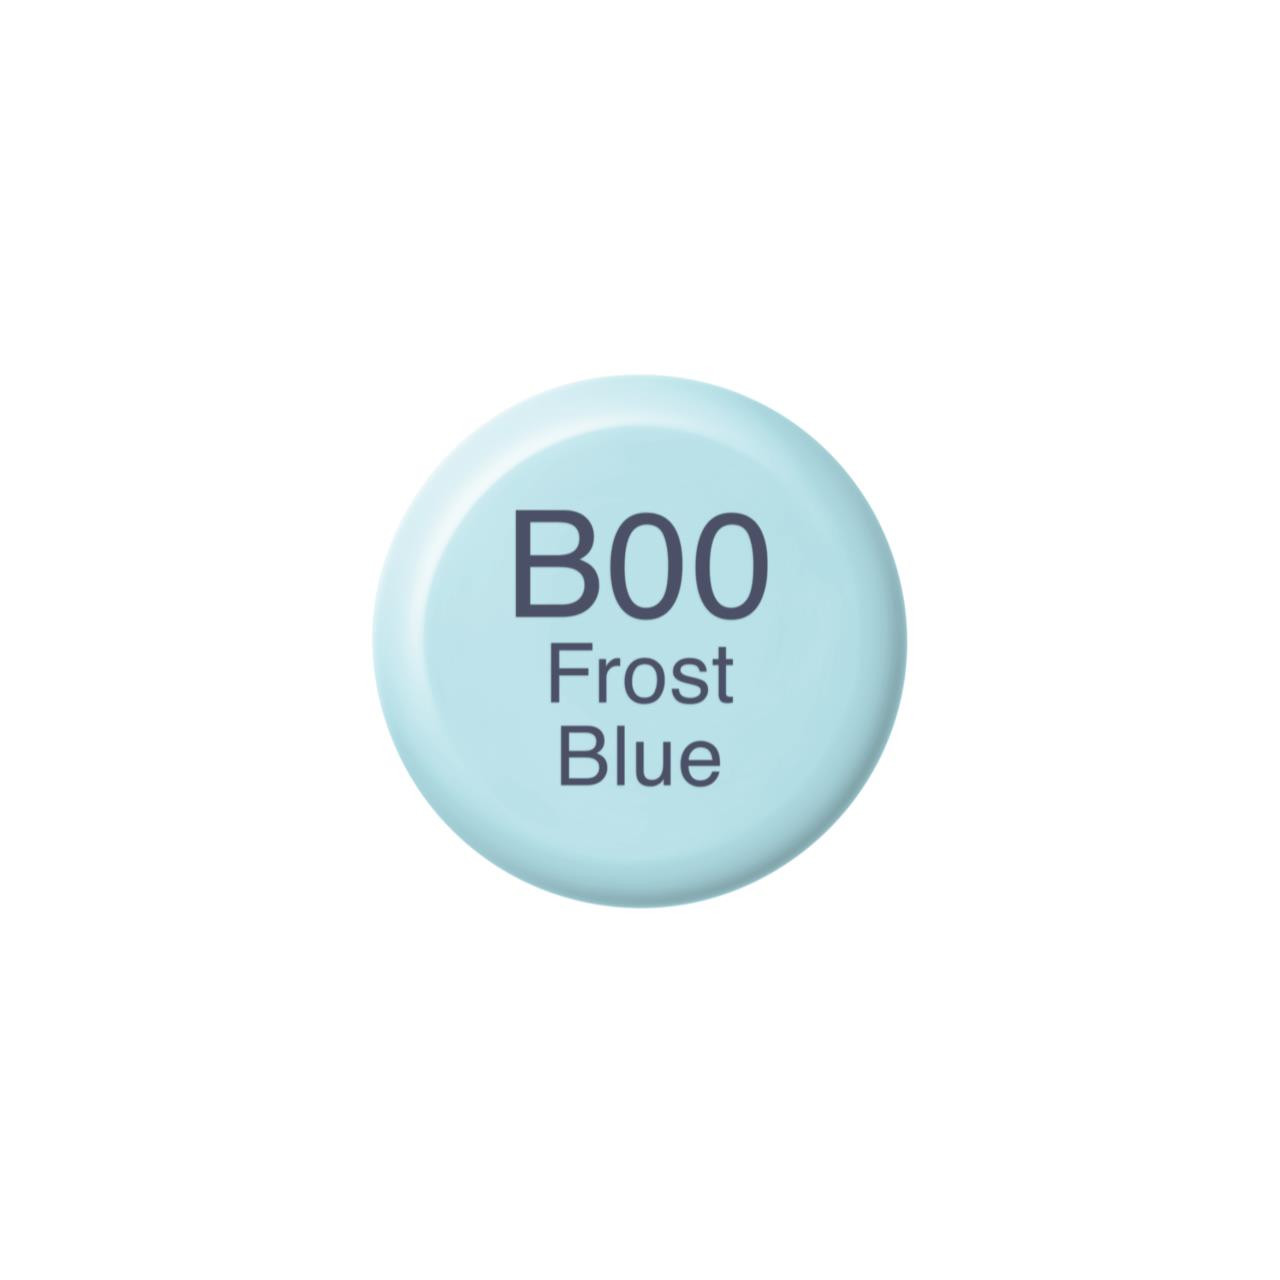 B00 Frost Blue, Copic Ink - 4511338055823